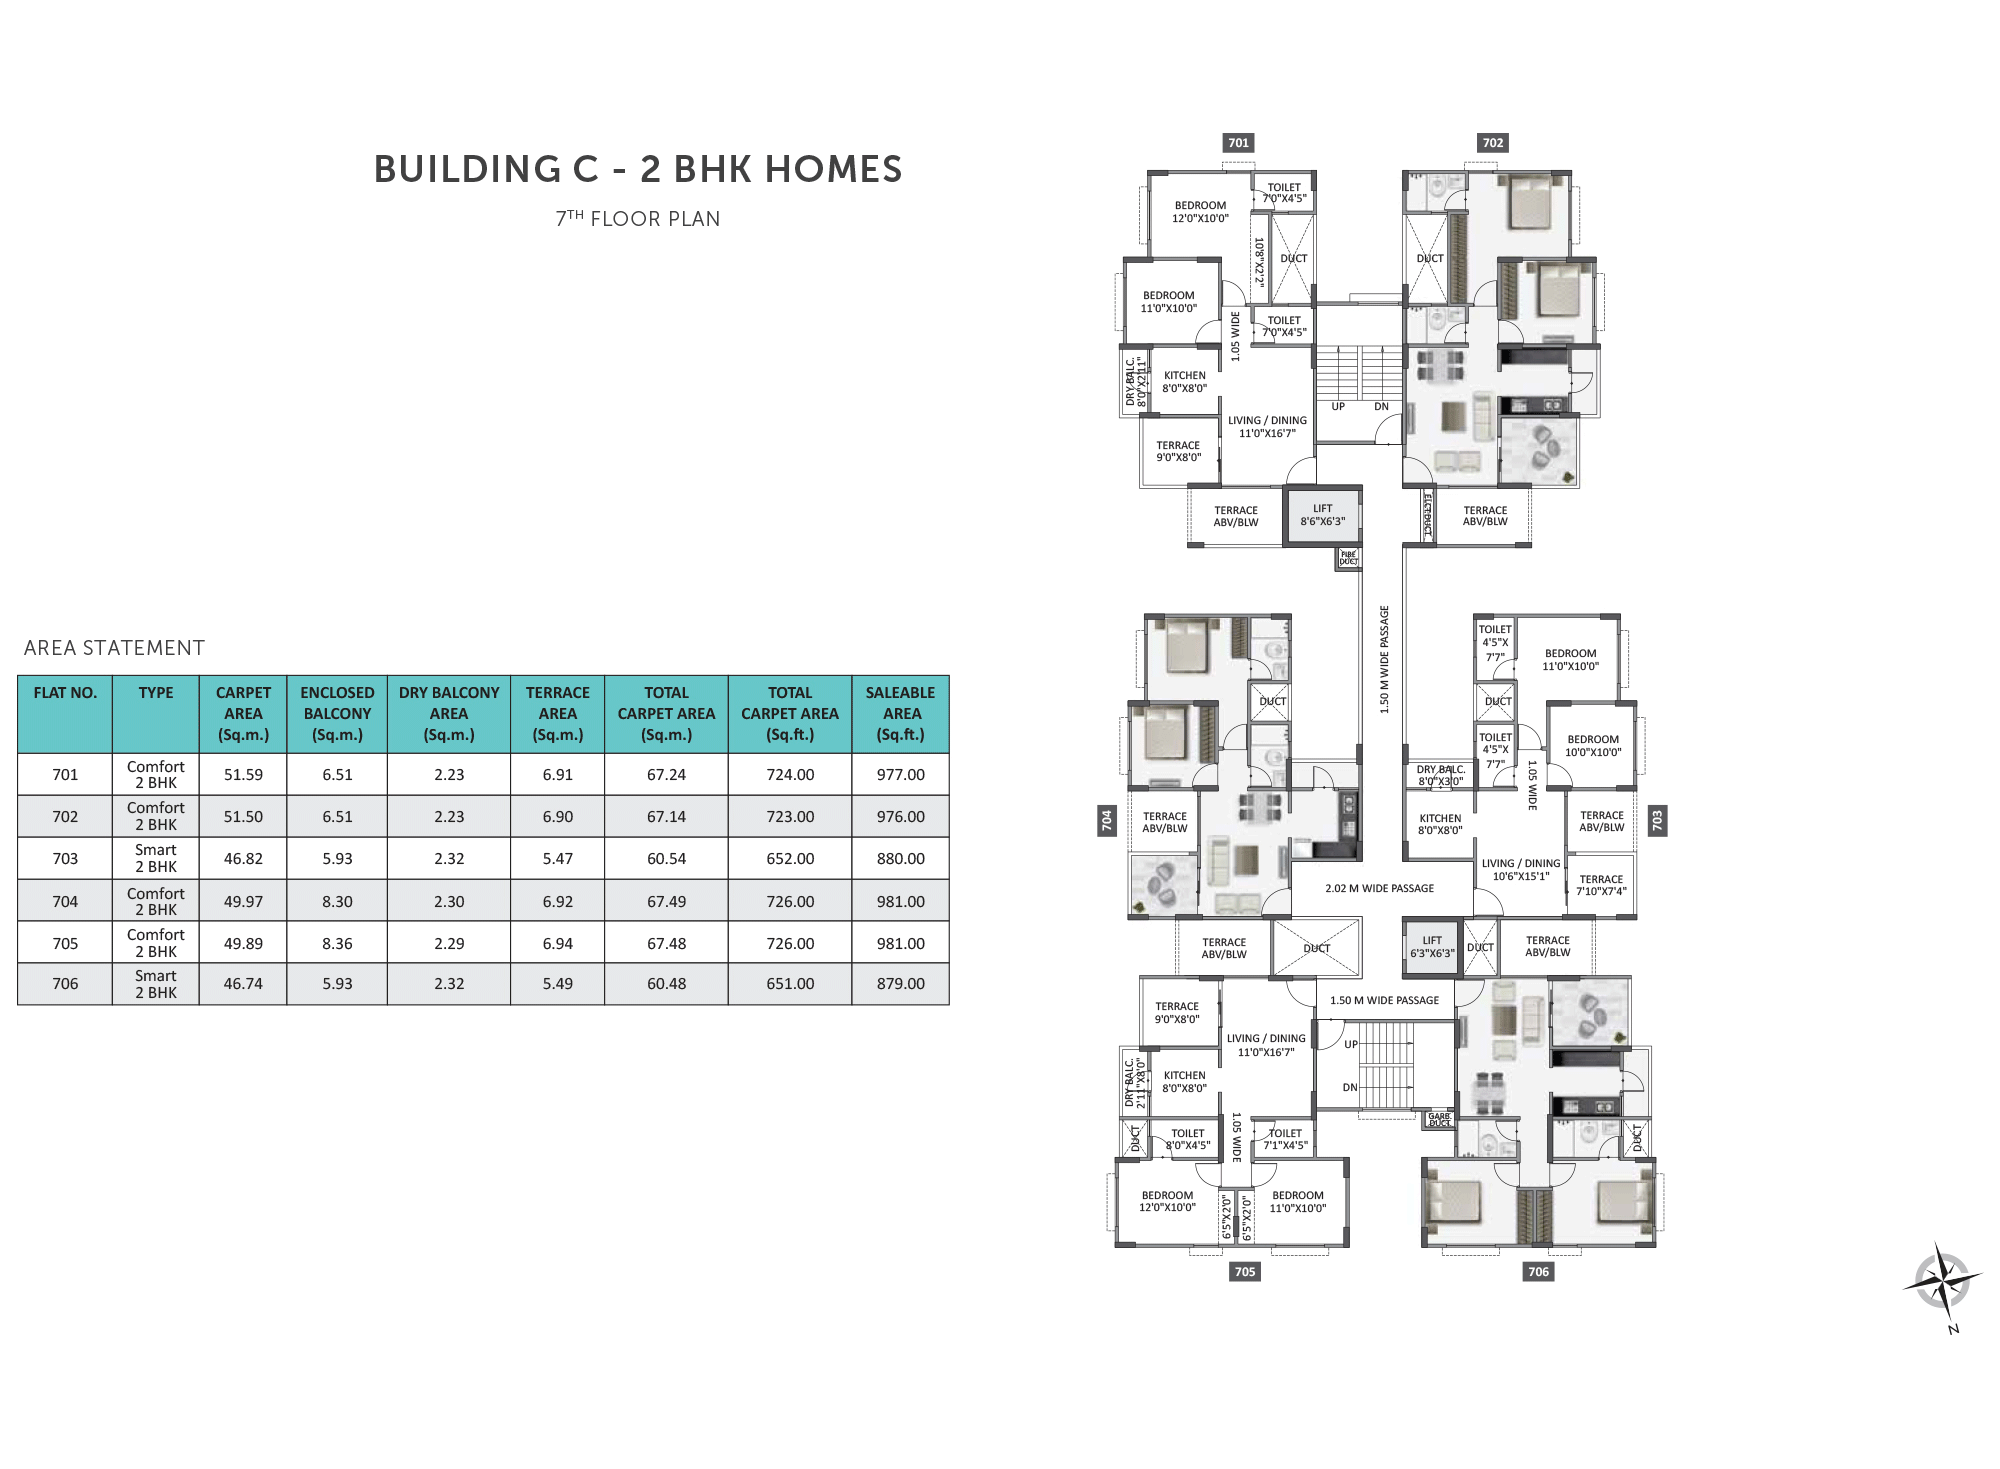 Equilife Homes_Building  C 2BHK 7 FLOOR PLAN